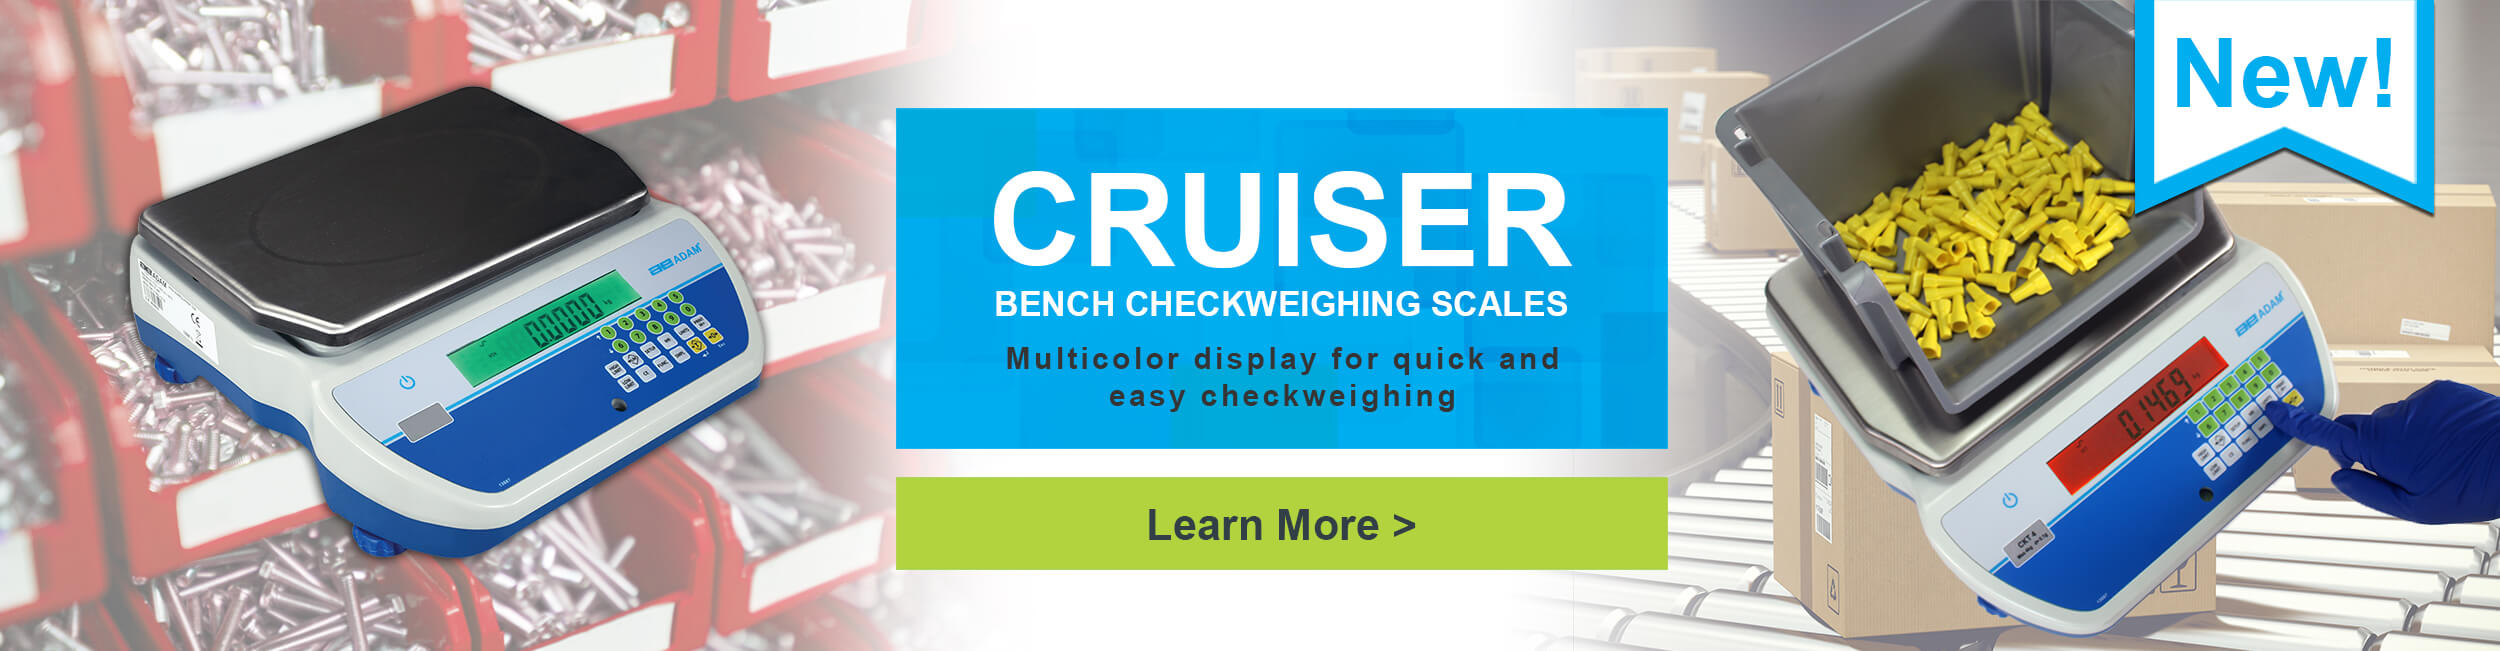 New! Cruiser Bench Checkweighing Scales. Multicolor display for quick and easy checkweighing.